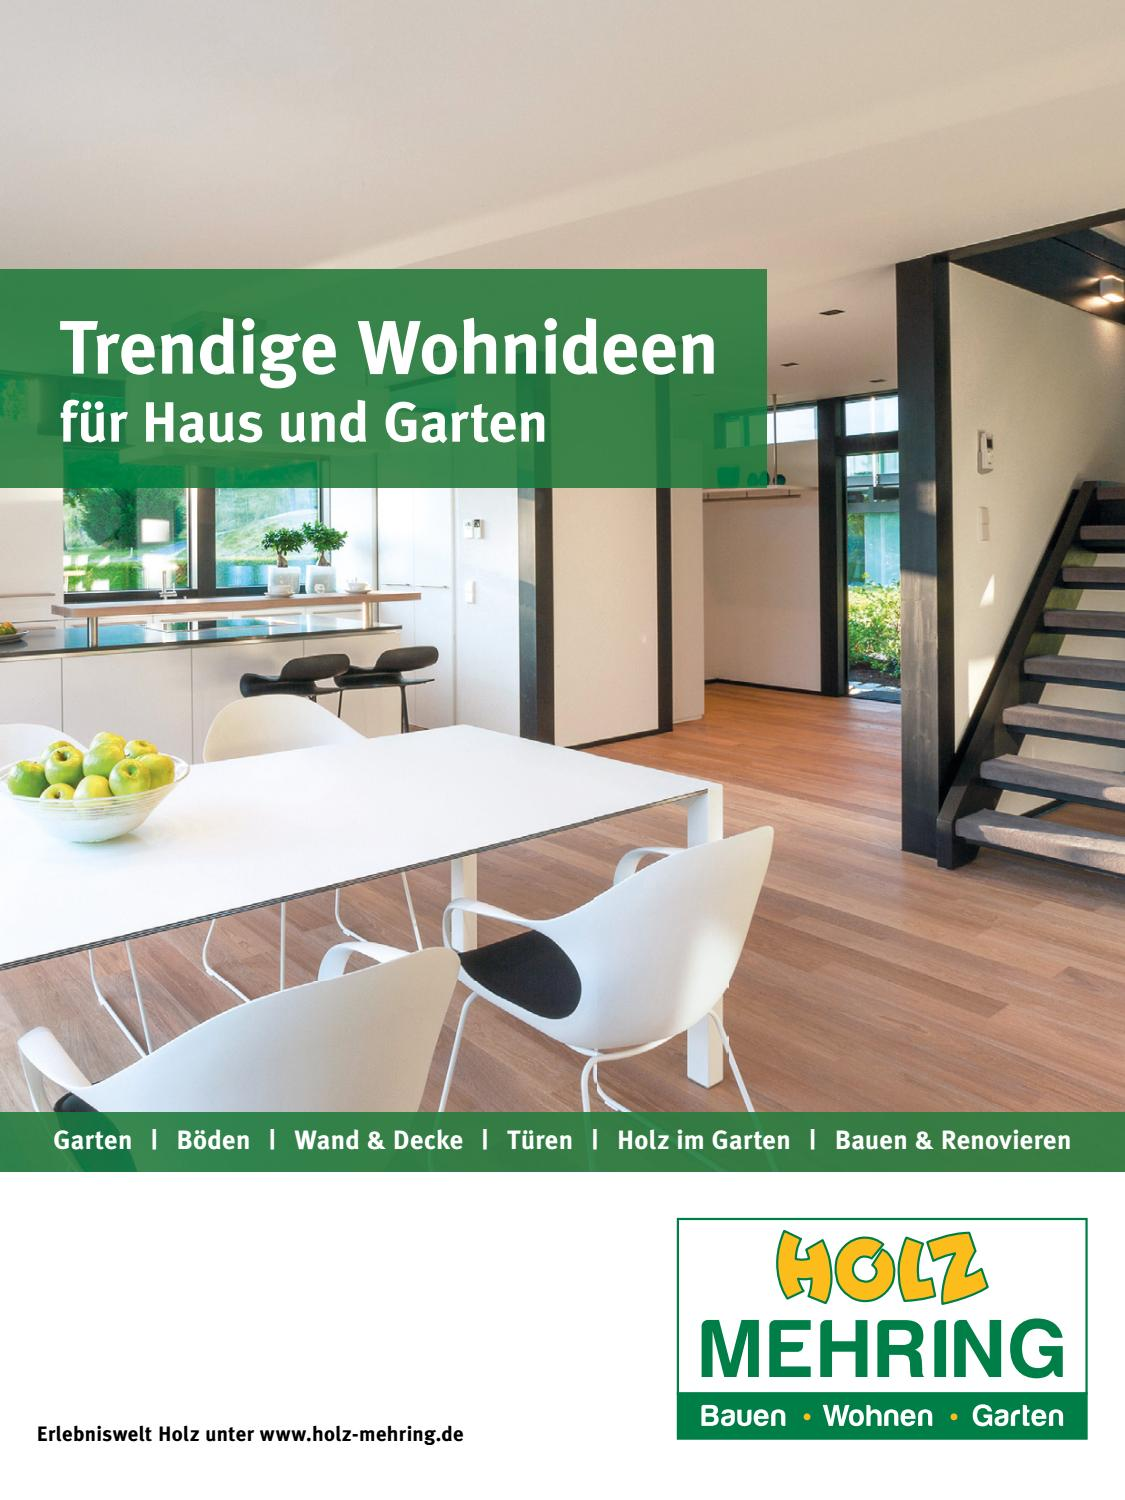 Holz Mehring 2017 by Kaiser Design - issuu